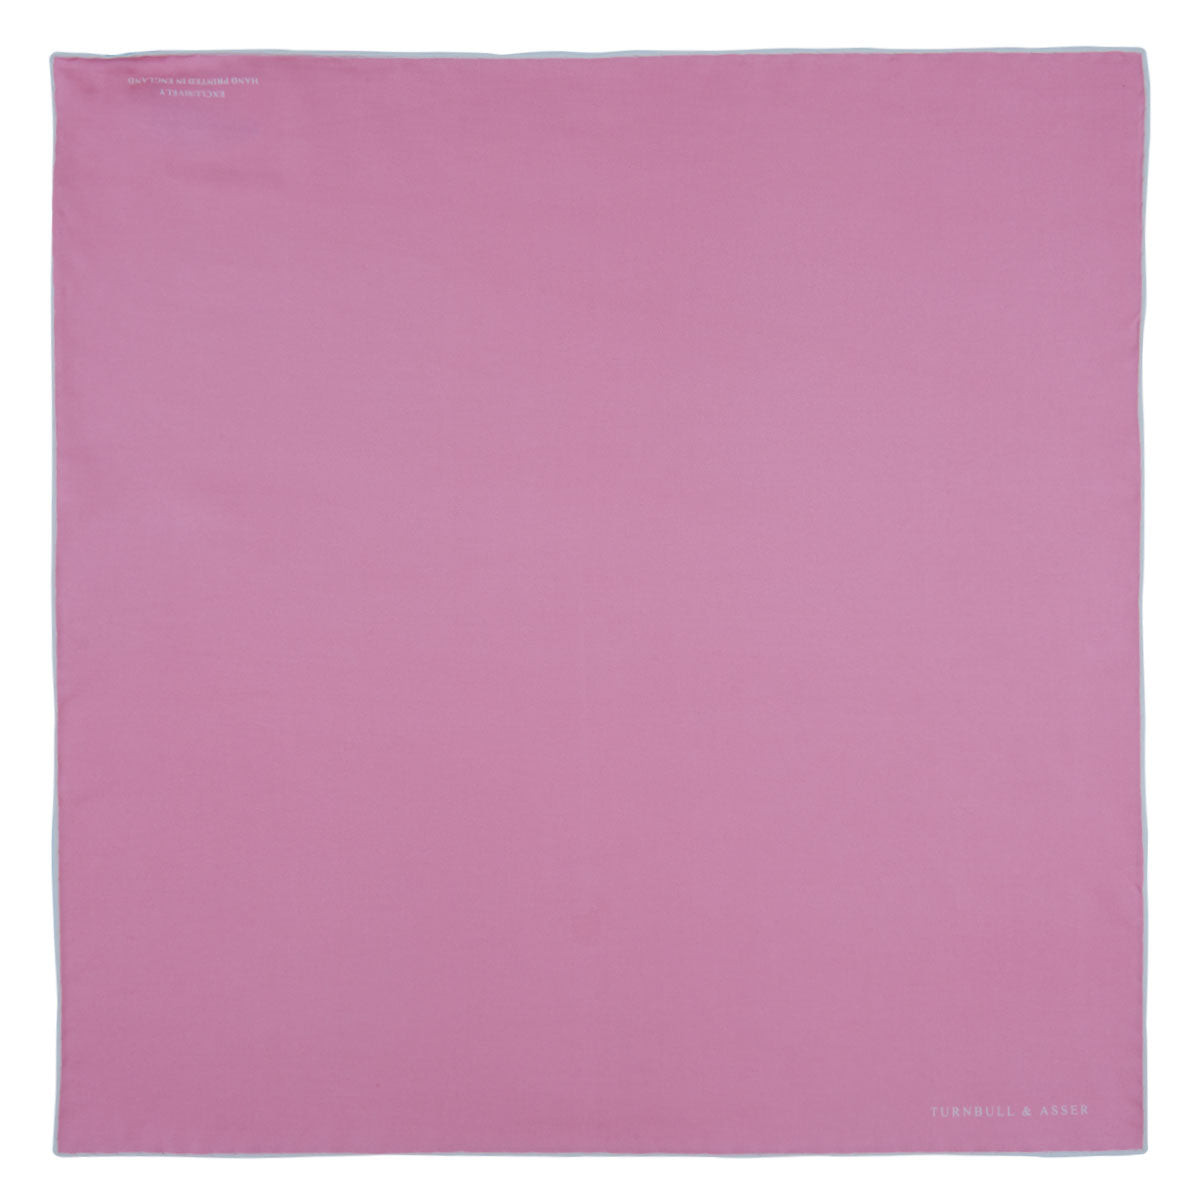 Pink and White Piped Silk Pocket Square